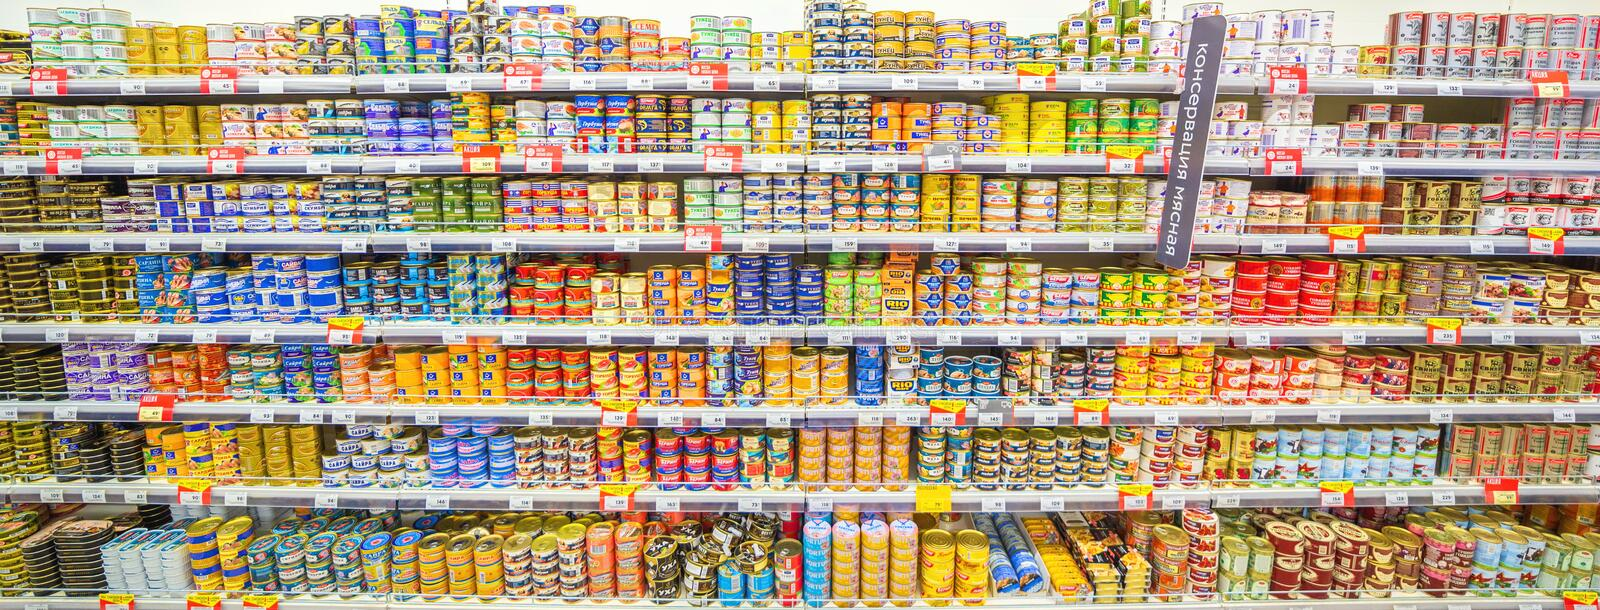 Samara, August, 2018: canned fish on the shelves of a supermarket store stock photos